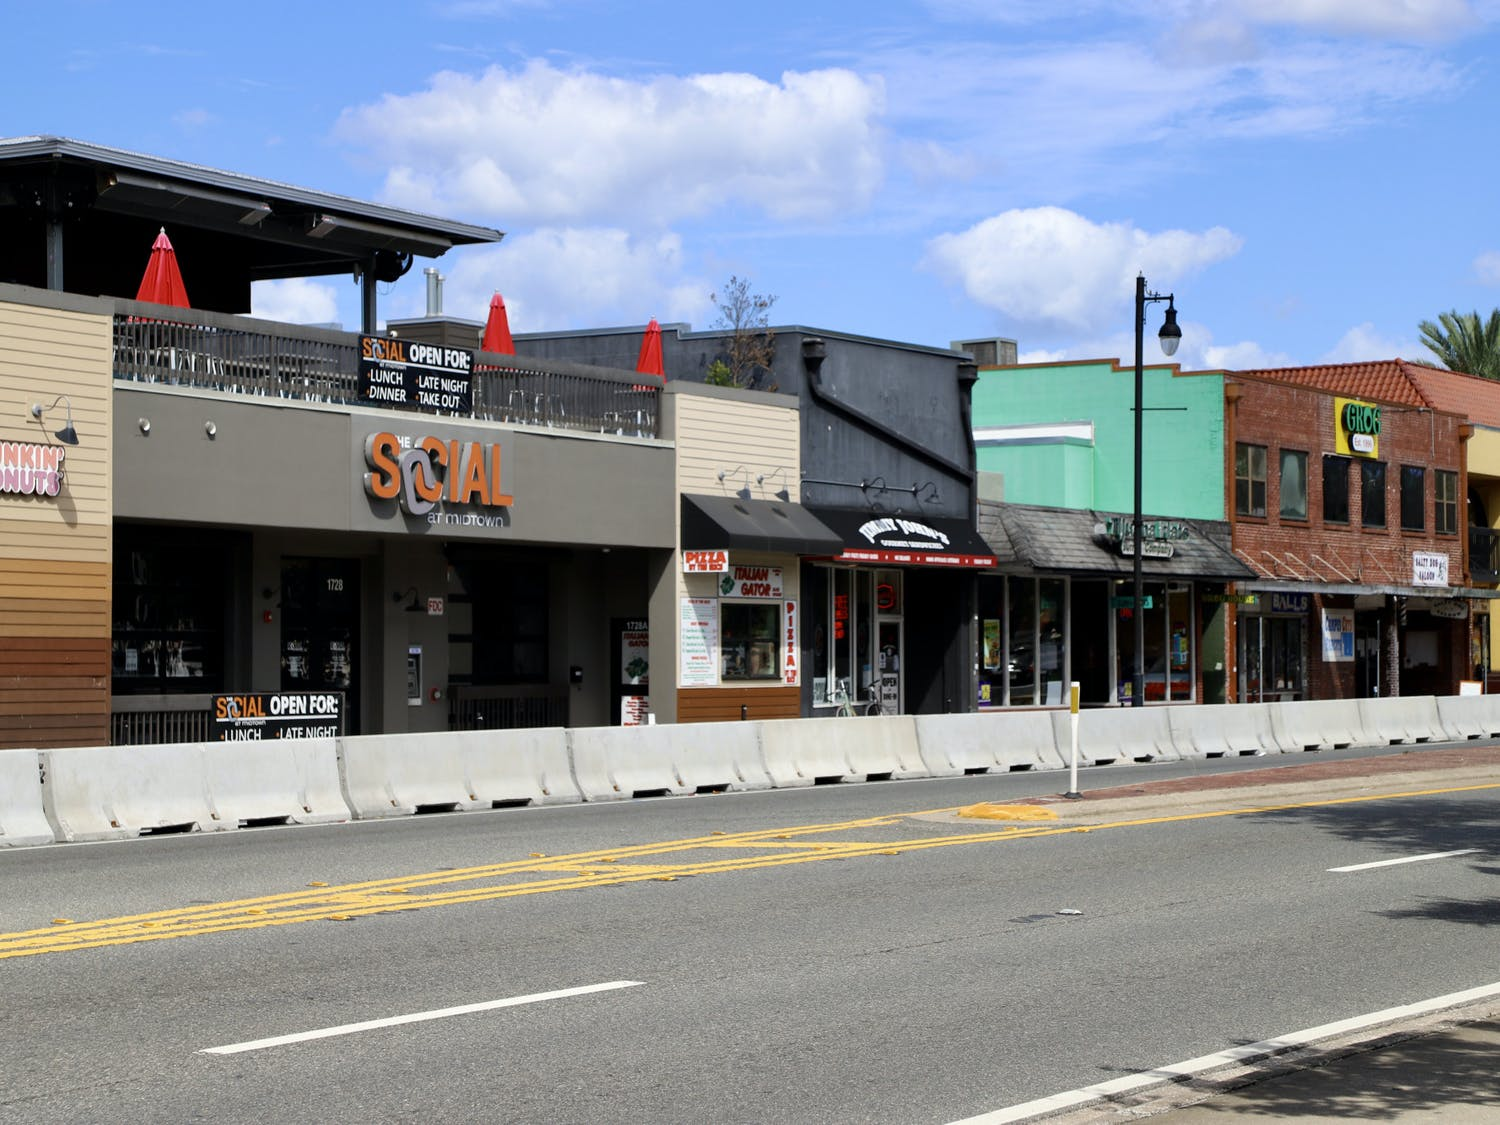 The Social at Midtown. The property, which houses the bar and restaurant as well as Dunkin' Donuts and Italian Gator, is up for sale.